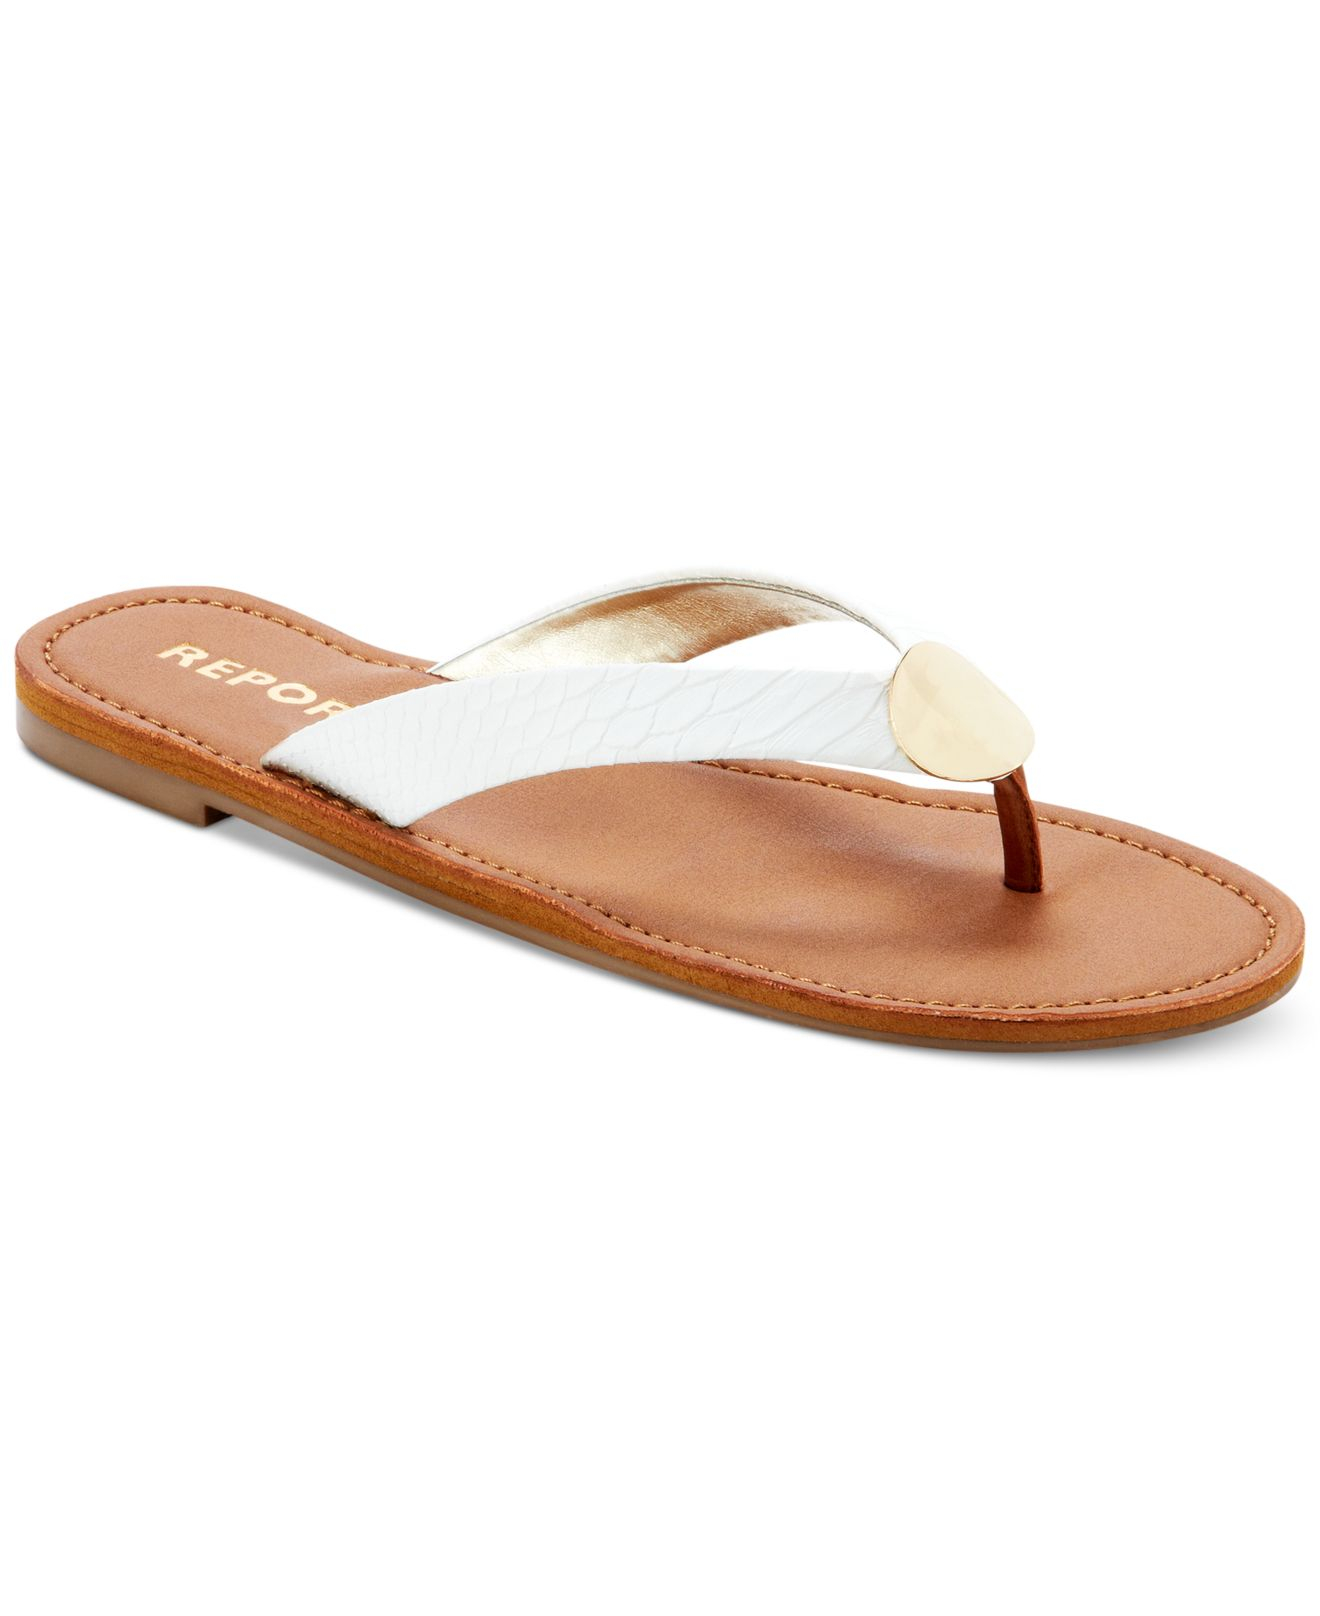 9dfa273c6d85a Lyst - Report Shields Flat Thong Sandals in White